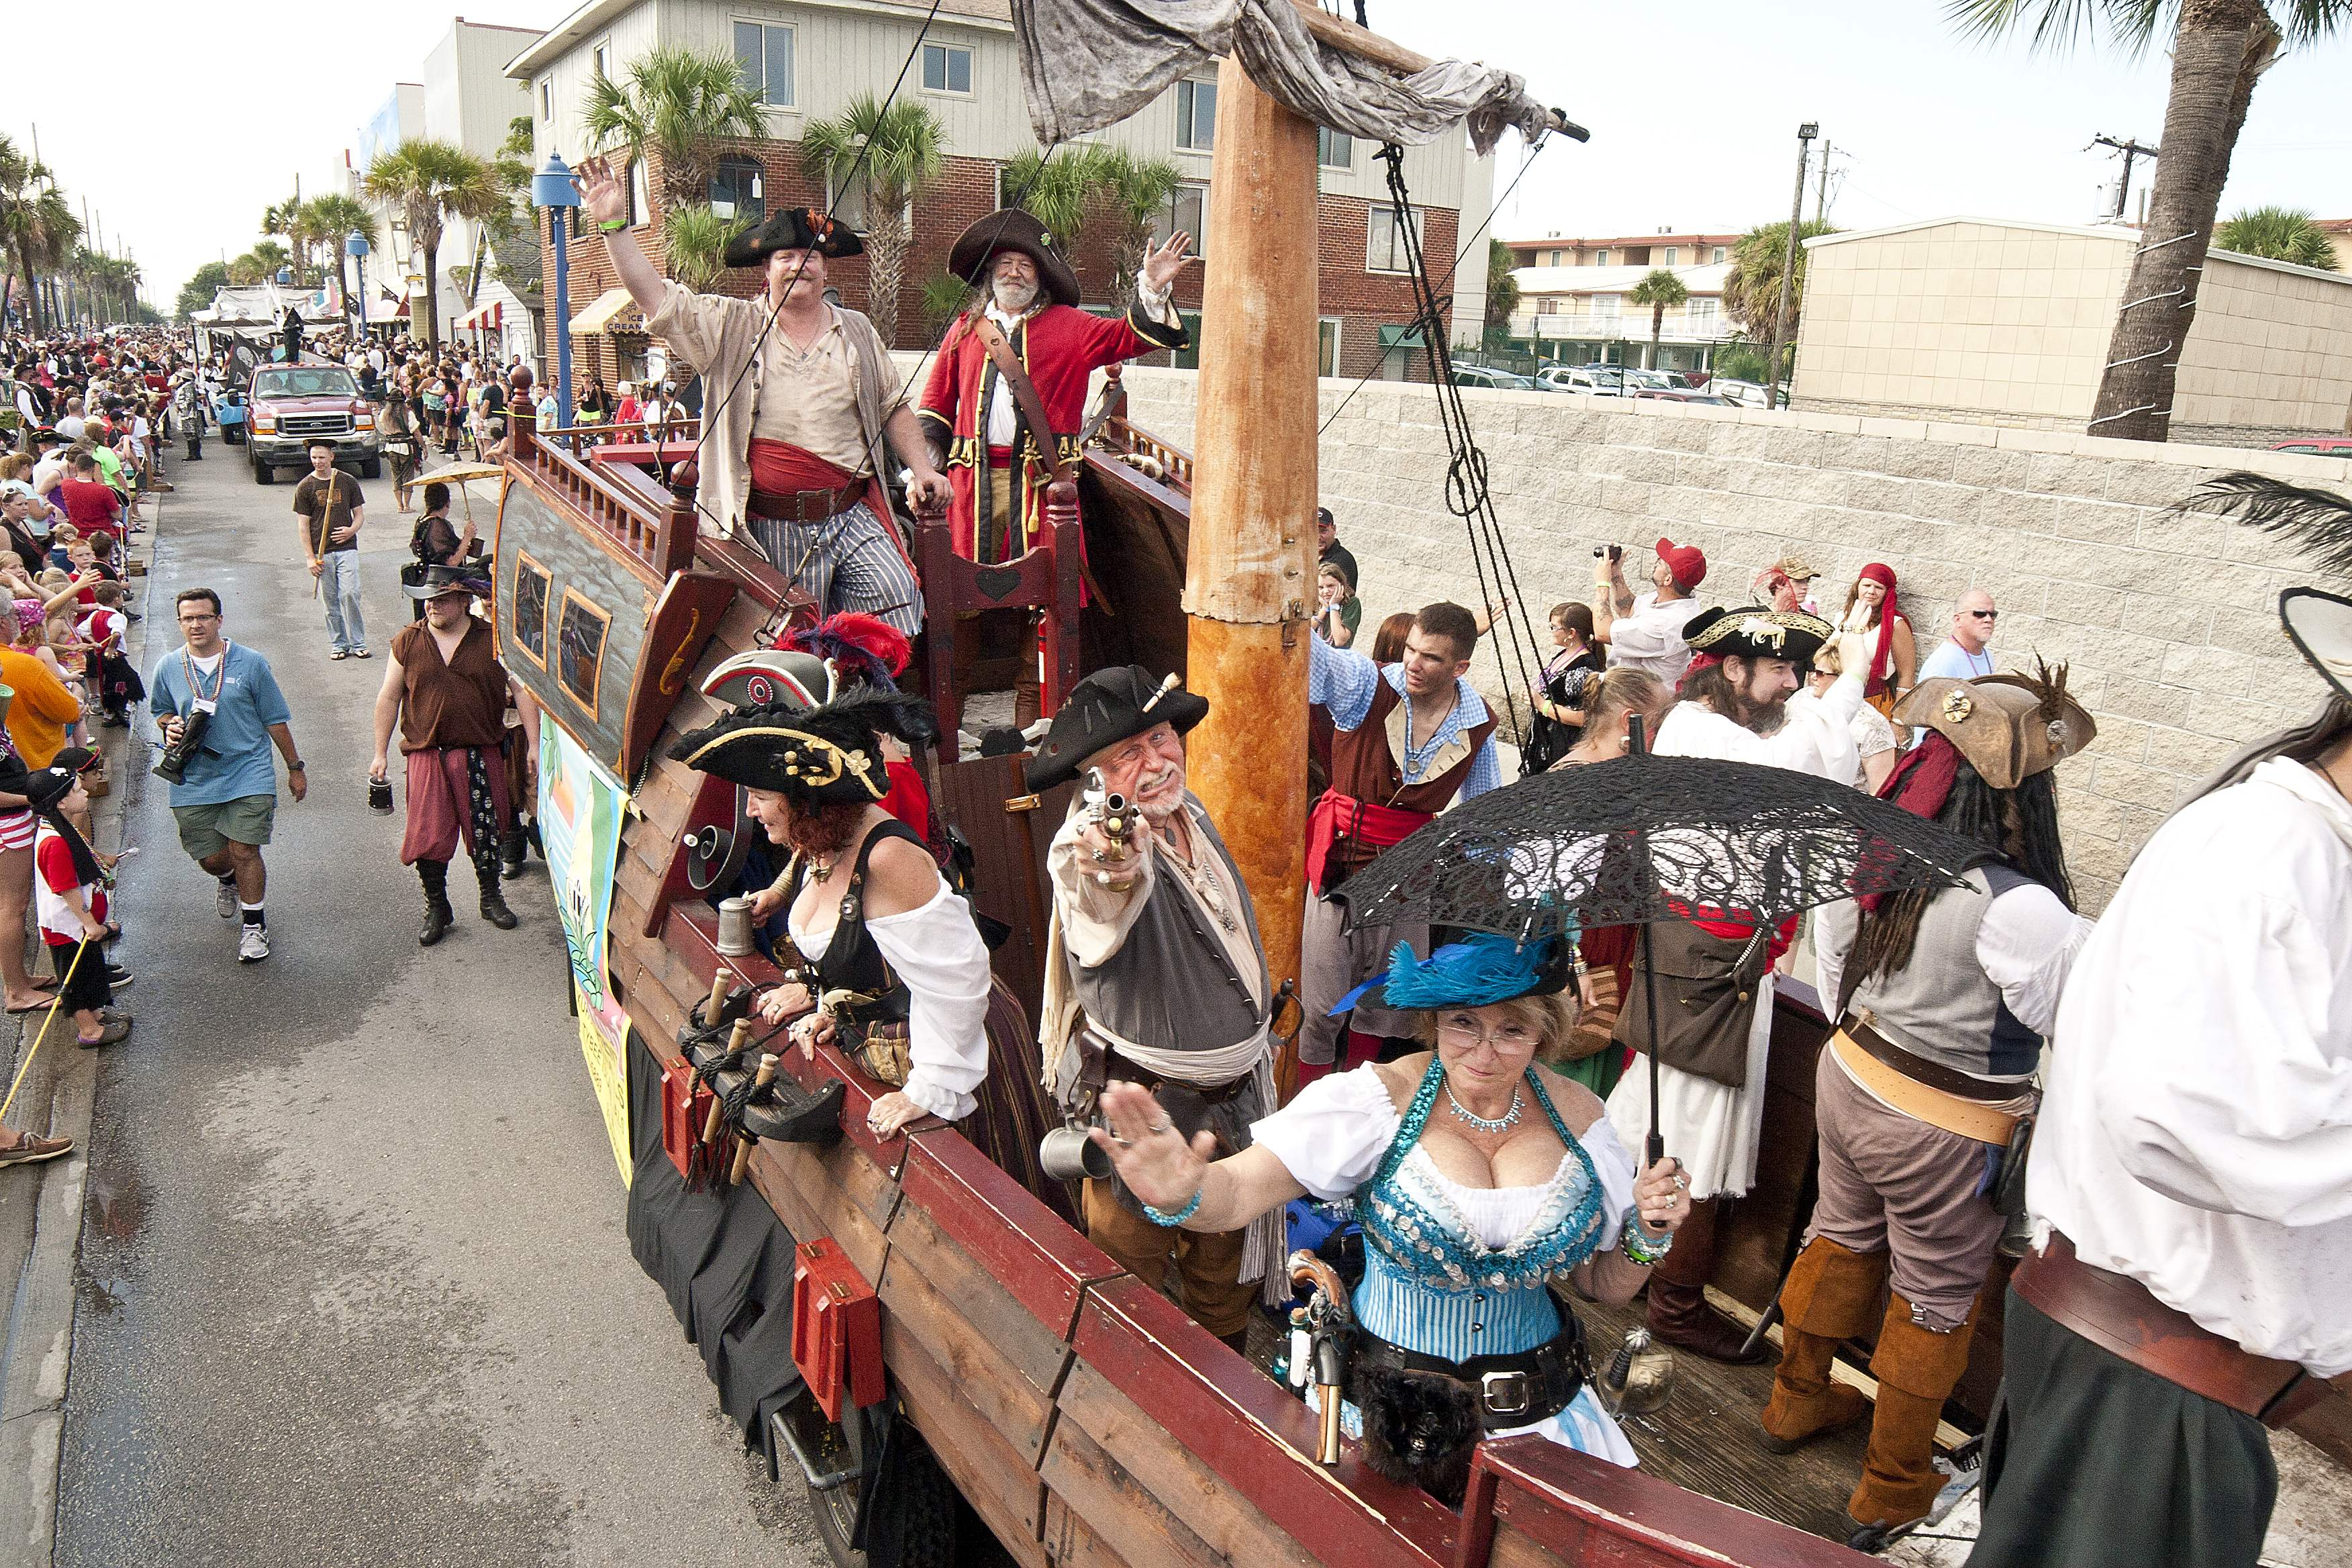 Pirate Fest Invades Tybee Island This Weekend Savannah